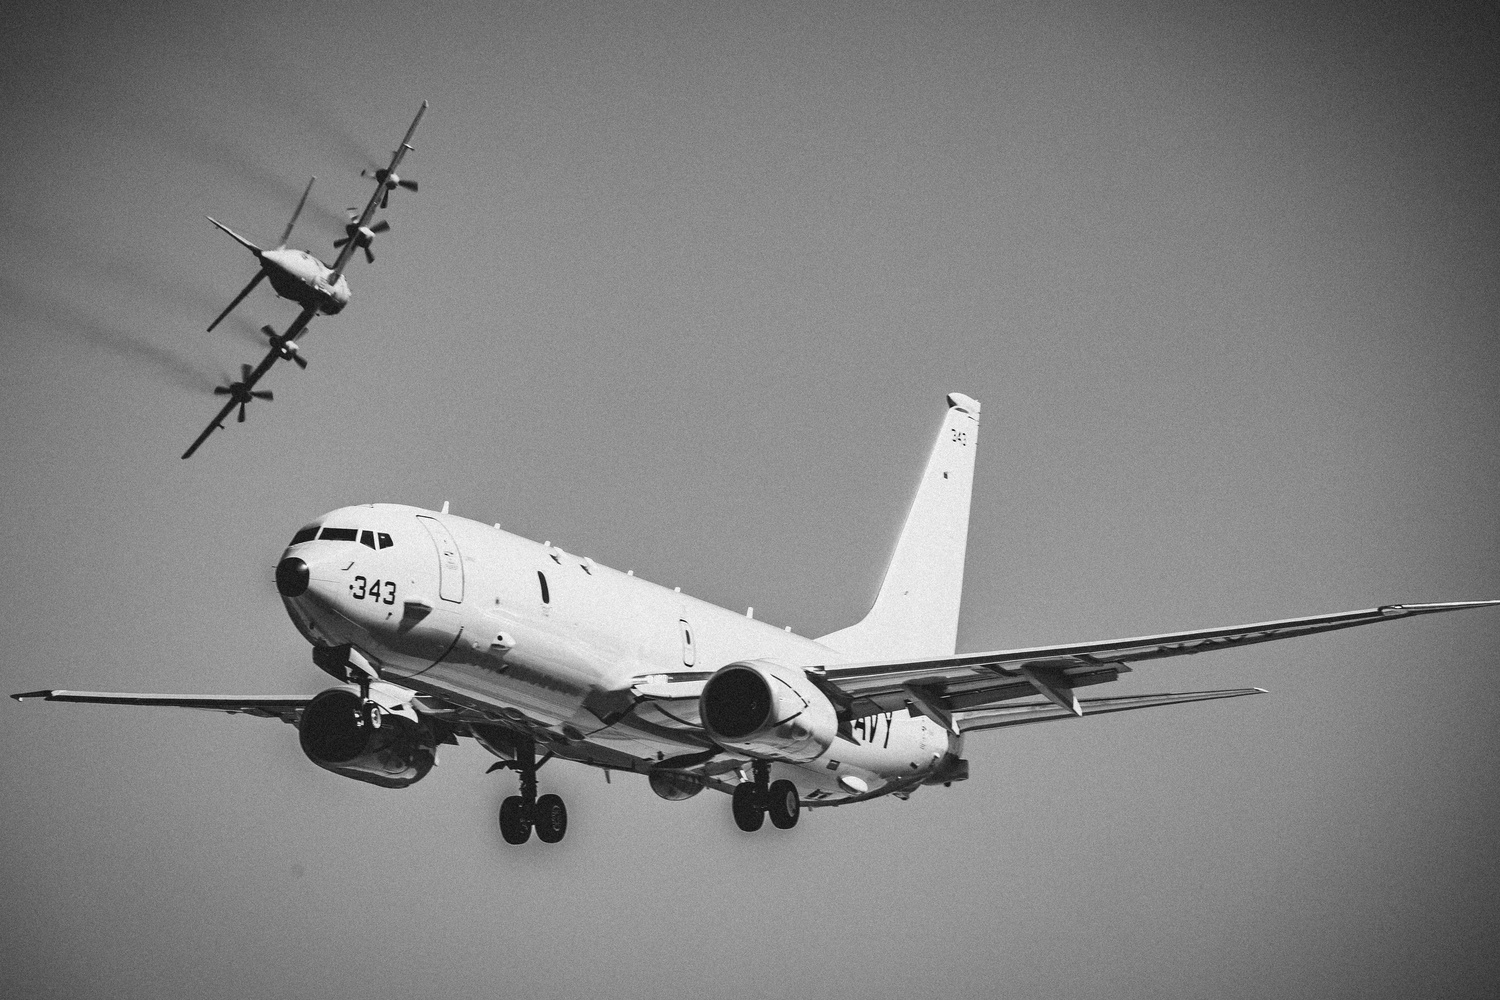 Maritime Patrol Pattern by Cam Smith